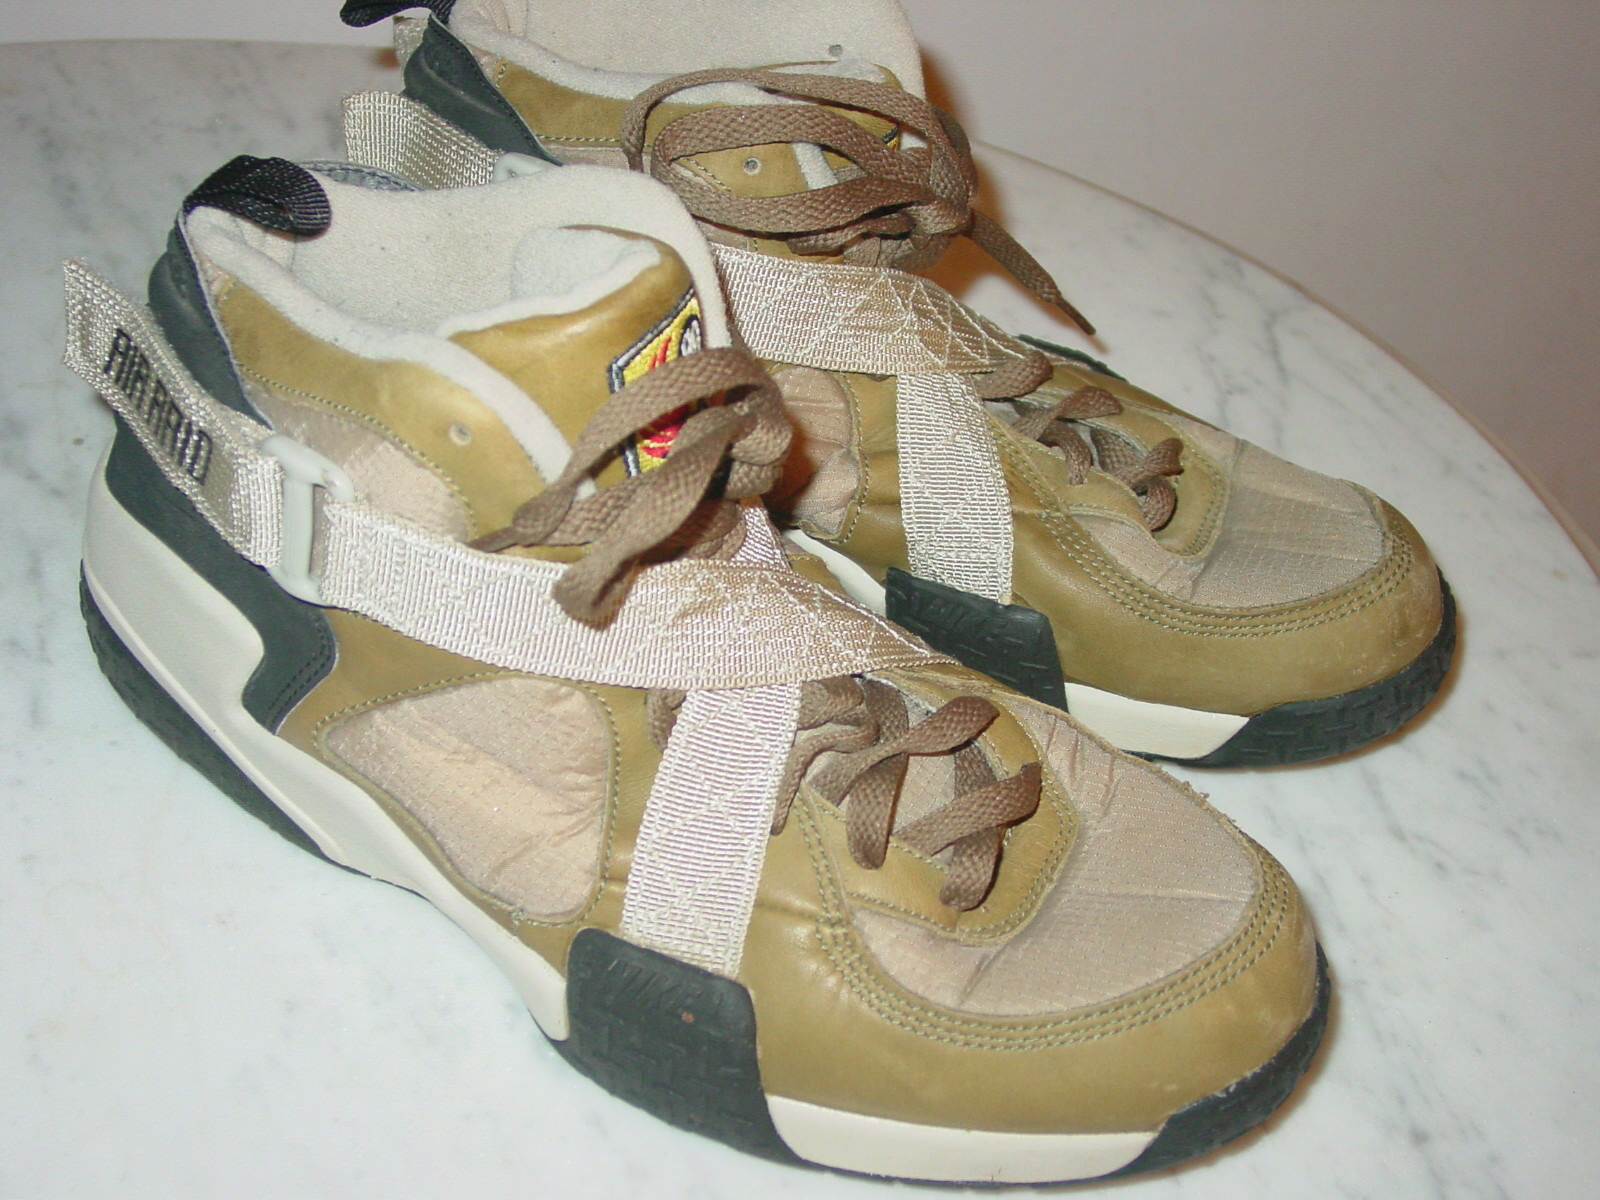 2004 Nike Air Air Air Raid Tuskegee Airmen 99th Fighter Squadron shoes  Size 10.5 827893